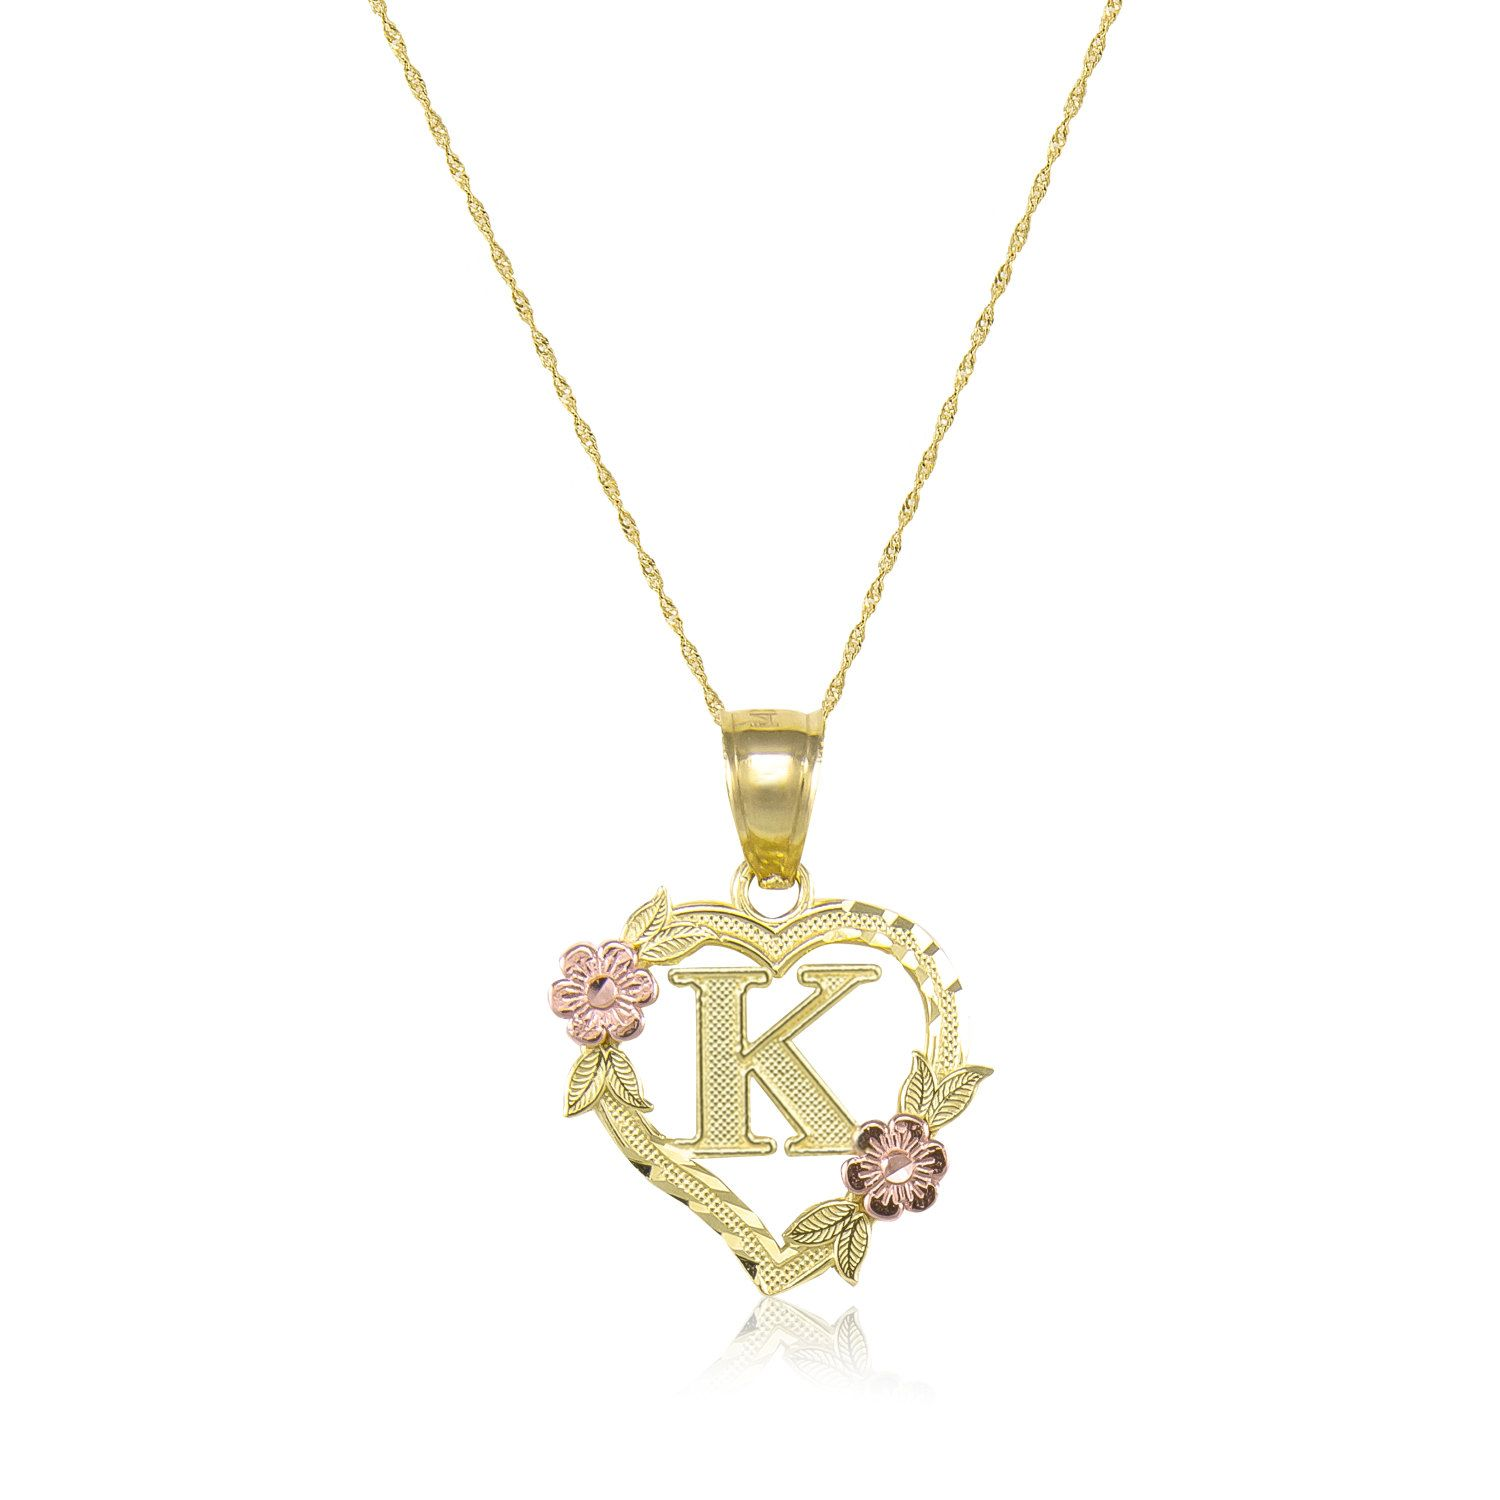 10k Solid Yellow Rose Gold Heart Initial Letter Pendant Singapore Chain Necklace Set A Z Any Alphabet Flower Charm